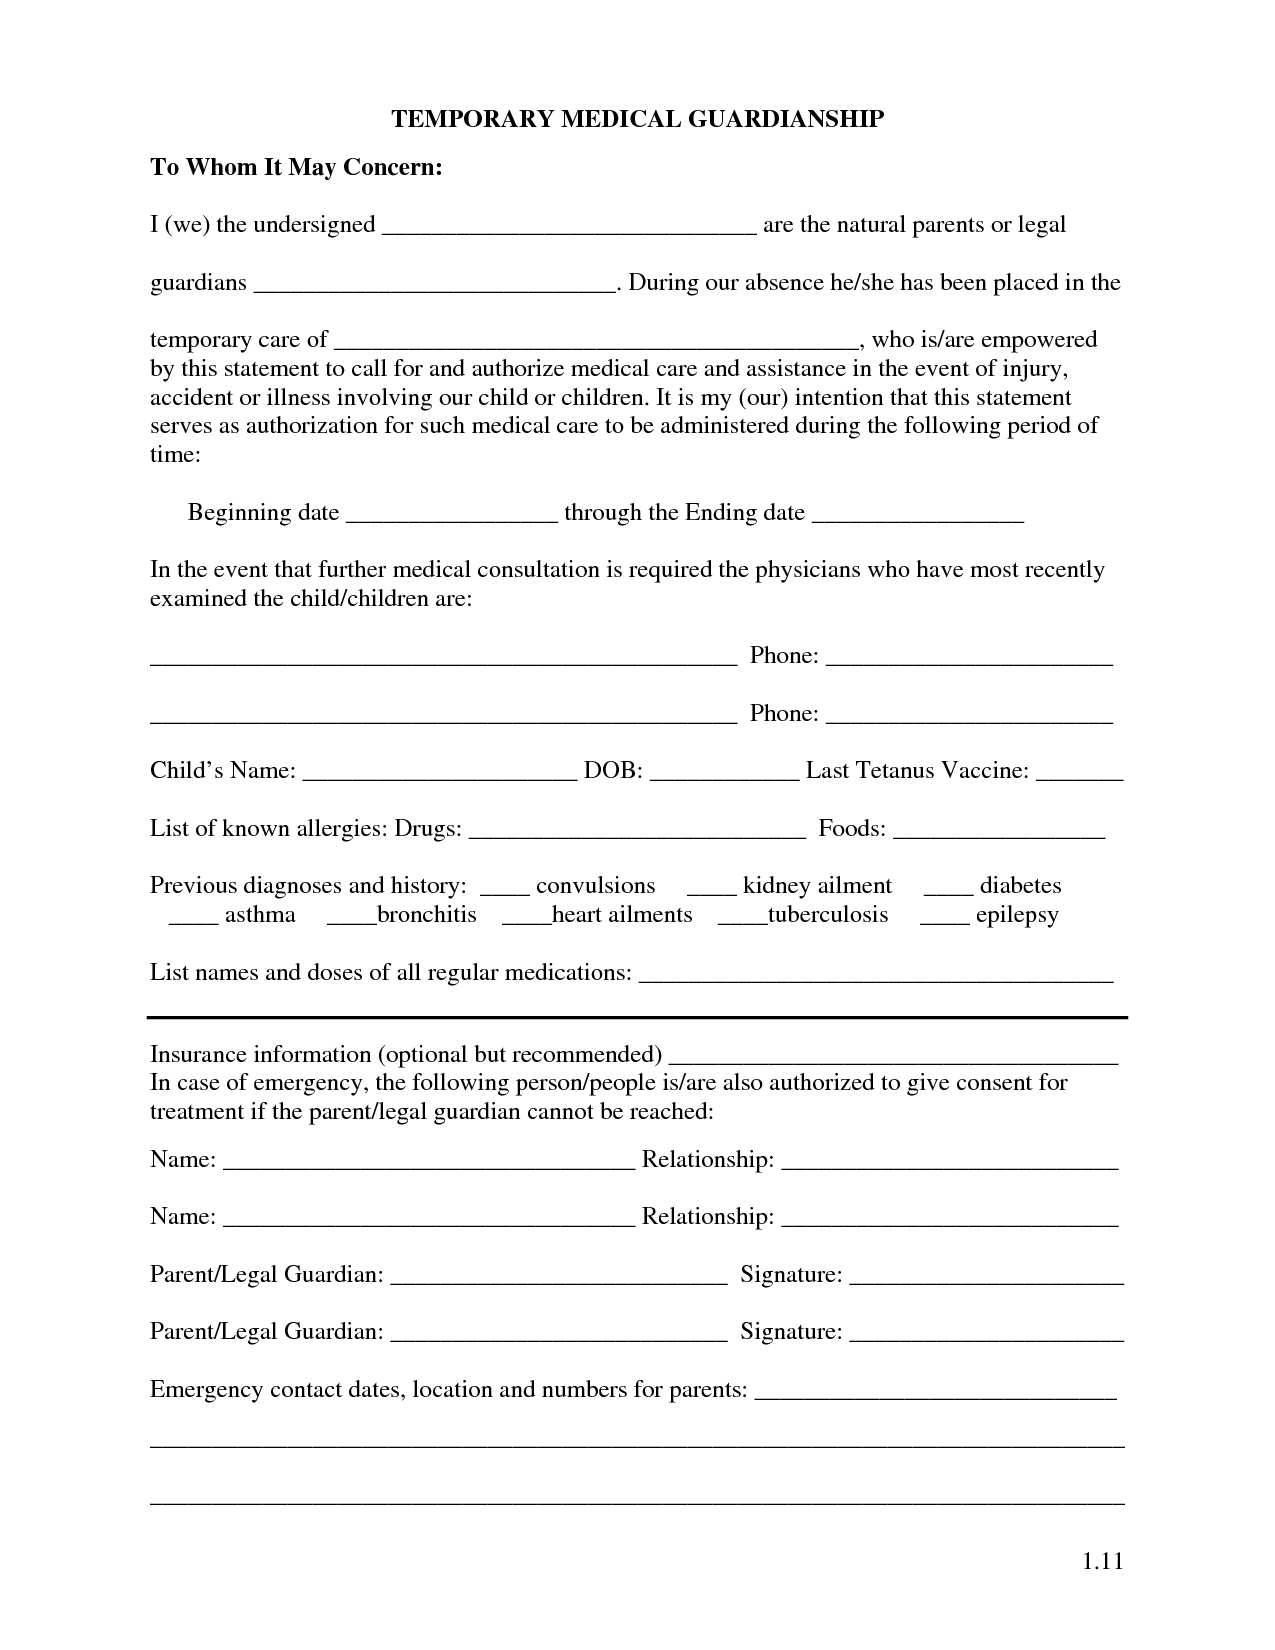 Free Printable Temporary Guardianship Forms | Forms | Child Custody - Free Printable Temporary Guardianship Form